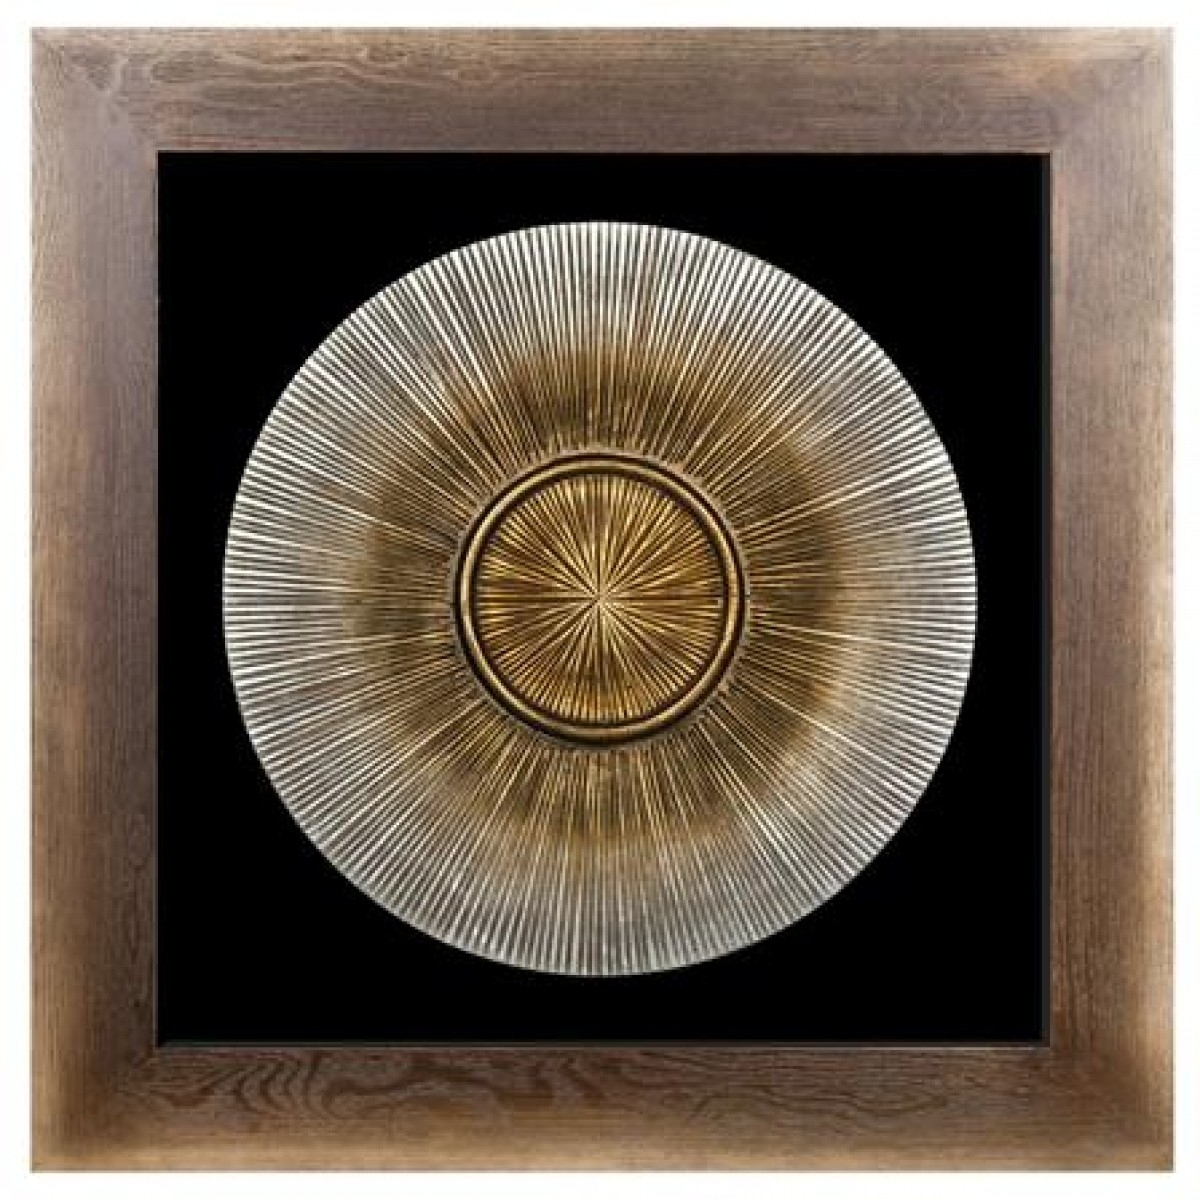 Black Wood Wall Art – Blogtipsworld With Latest Round Wood Wall Art (View 3 of 15)